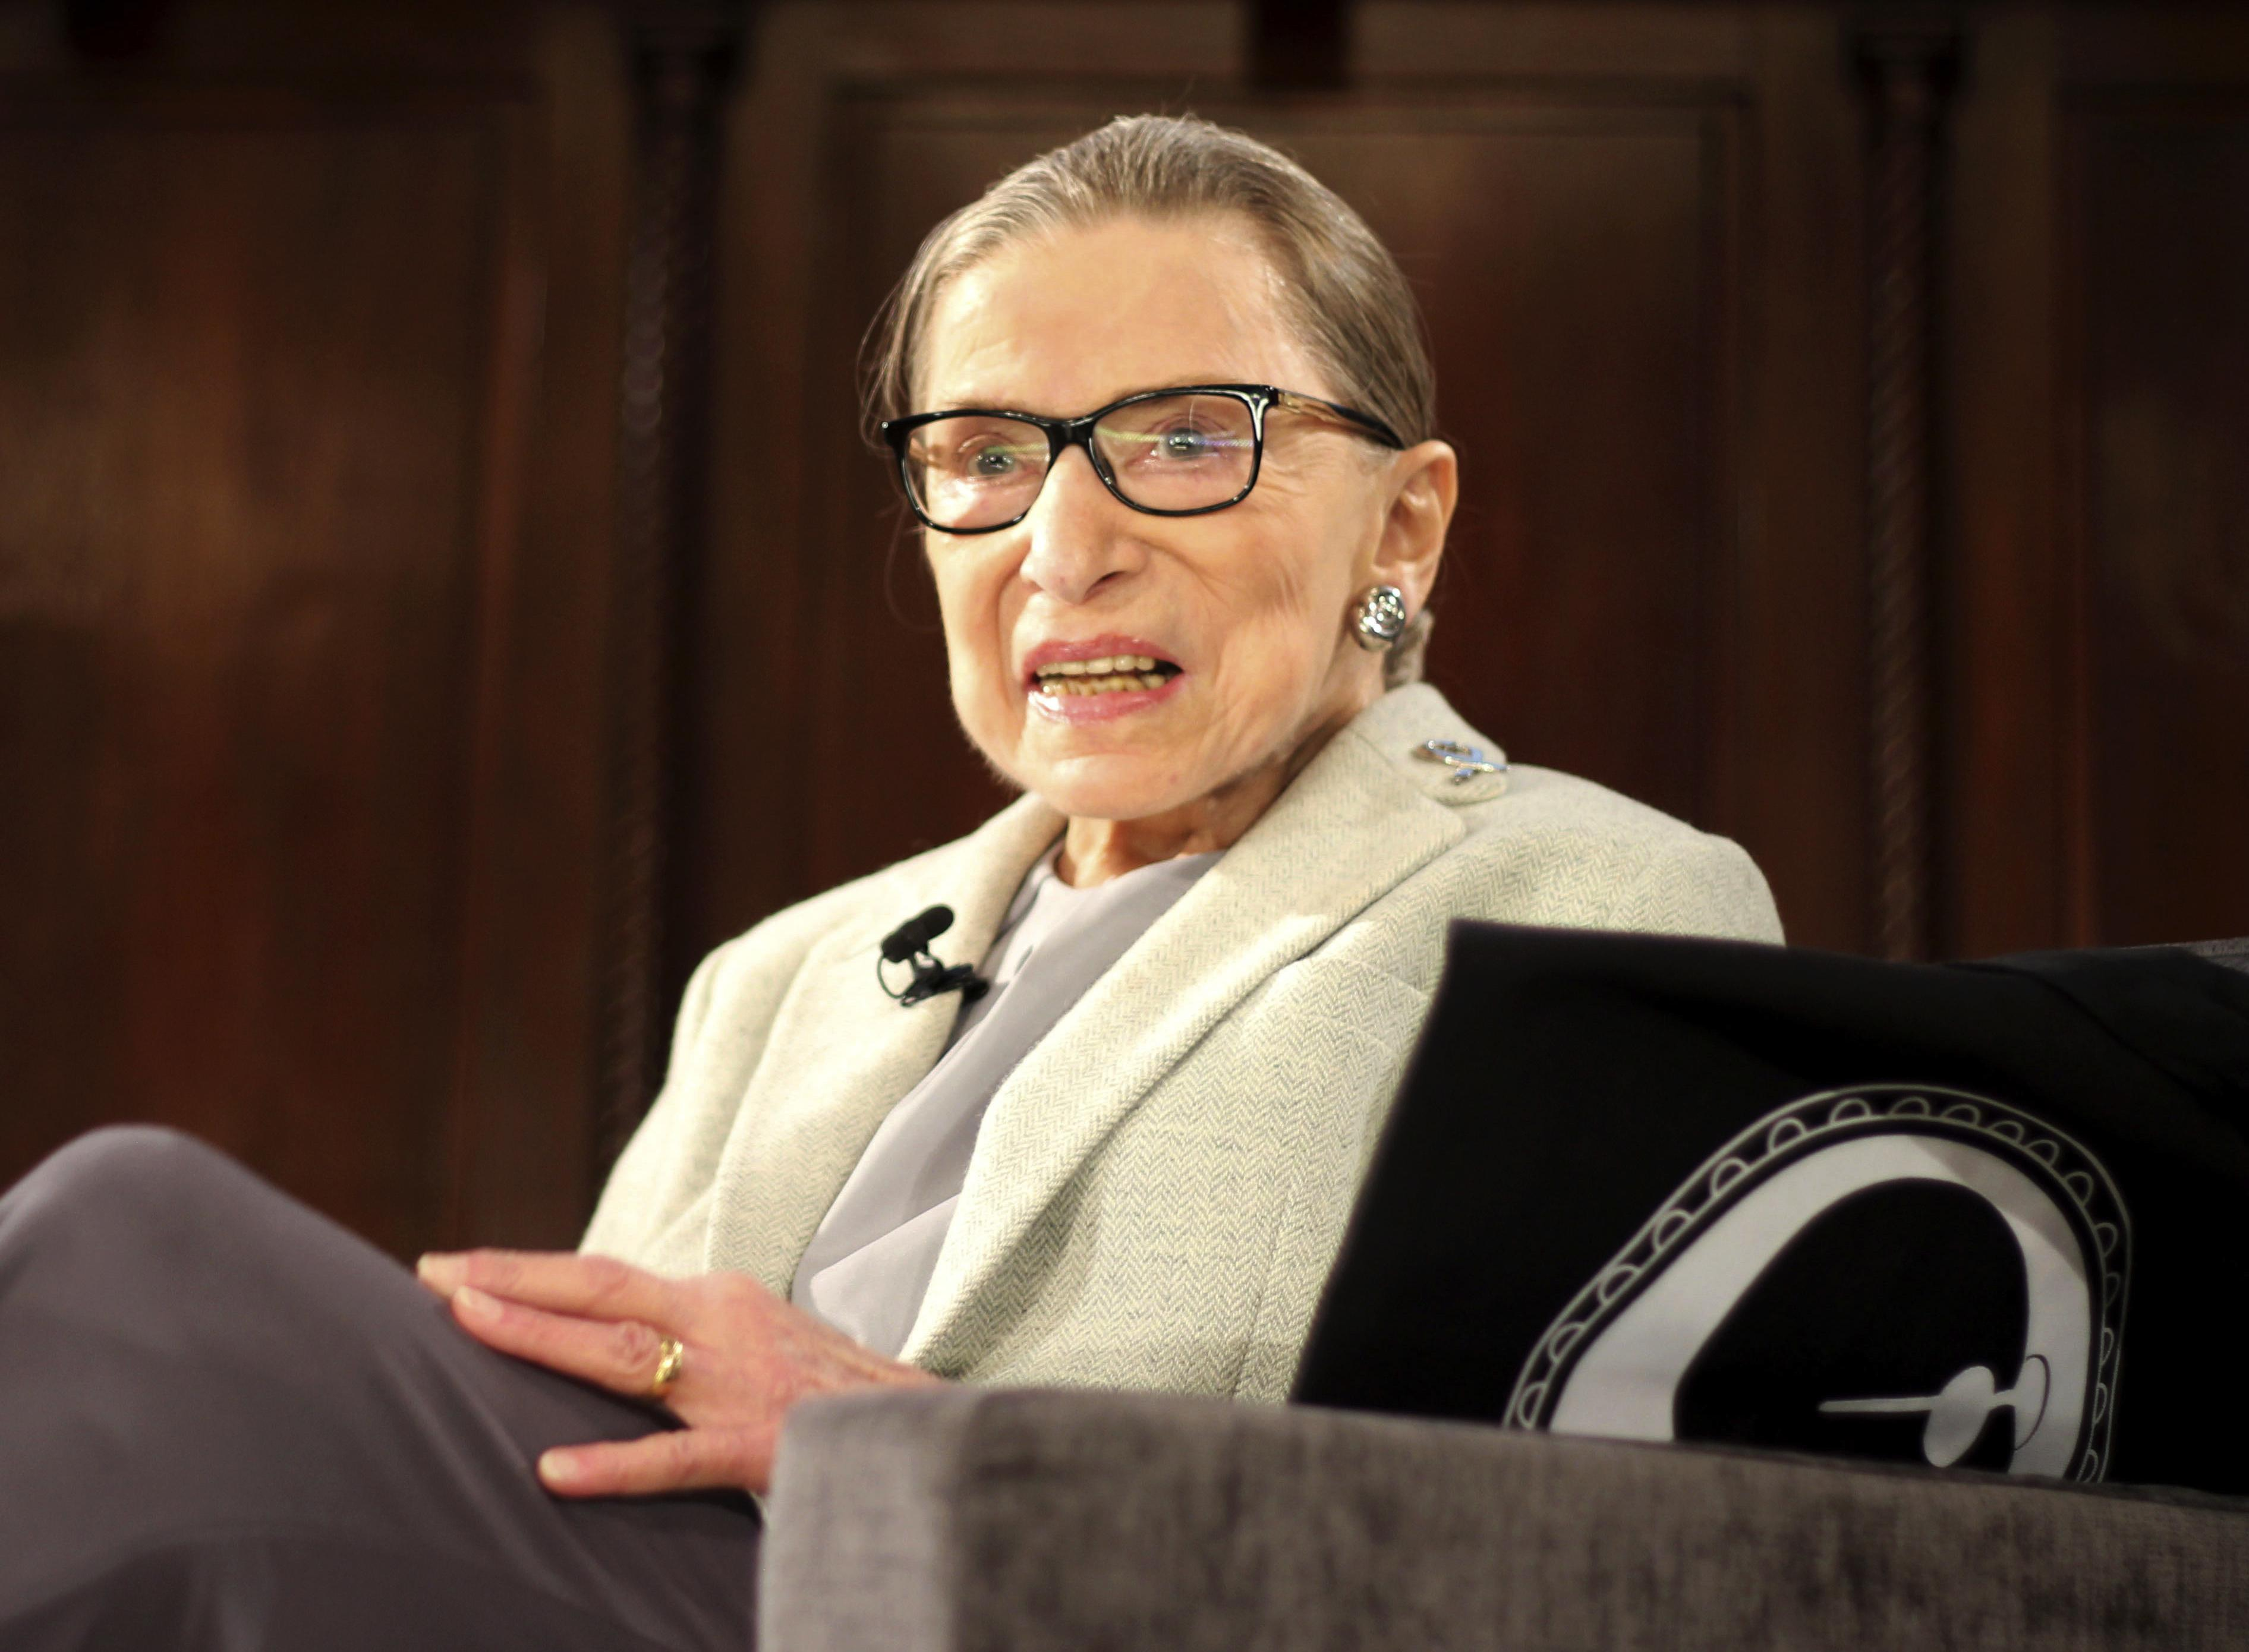 Trump already has replacement ready for Justice Ruth Bader Ginsburg's post: Report